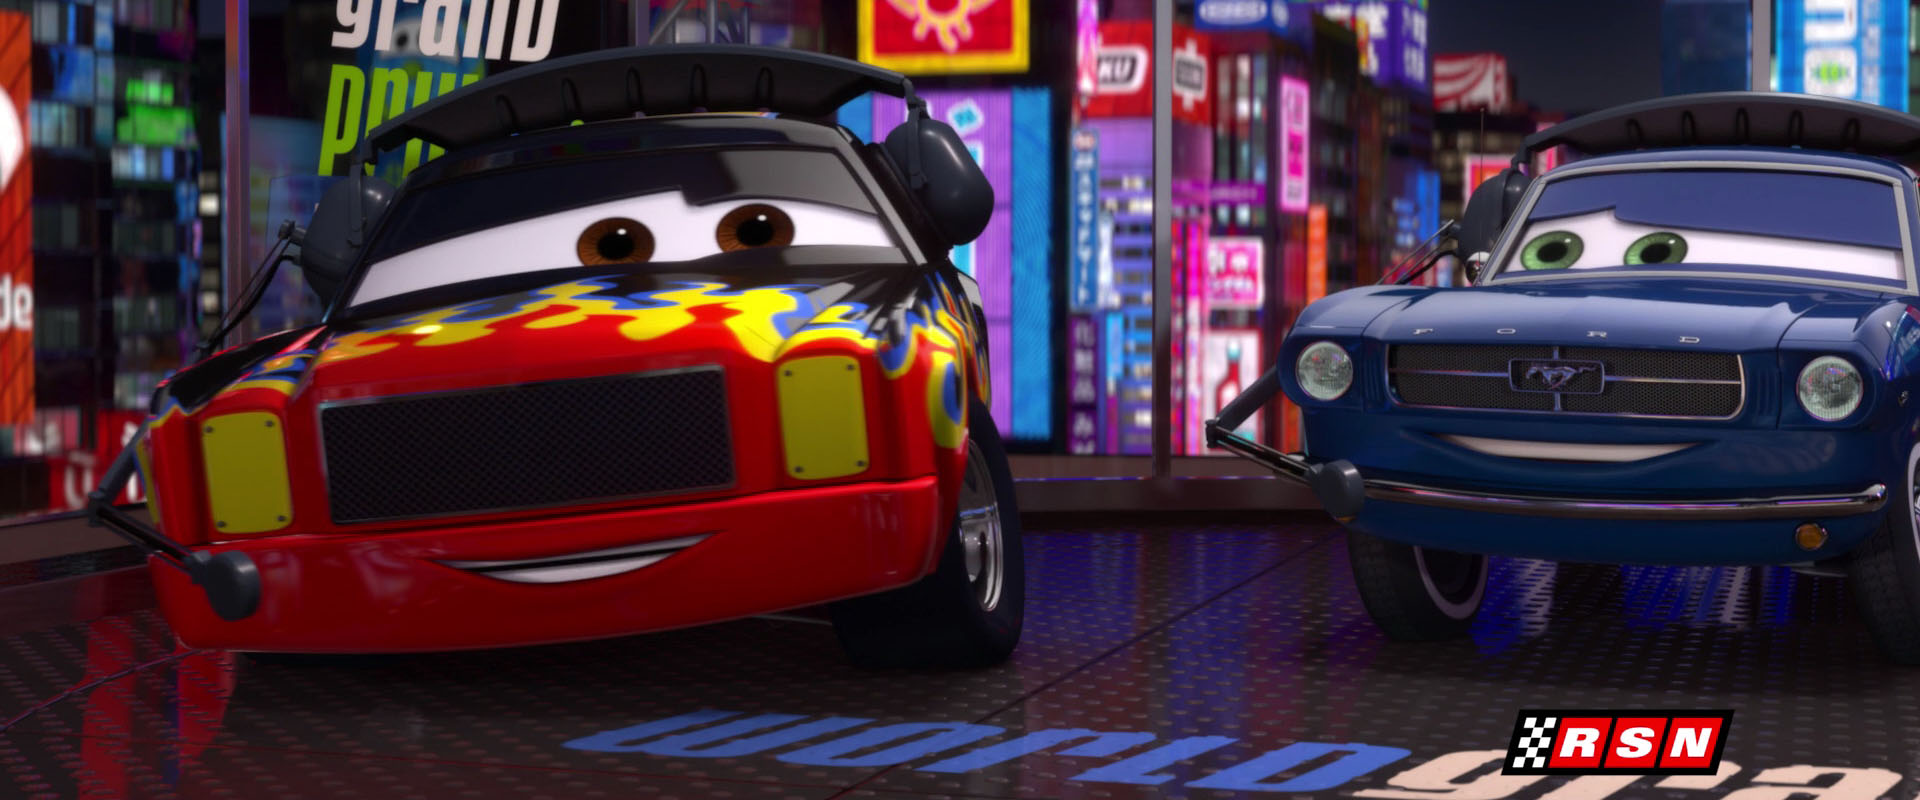 Cars 2 Wallpaper Lightning Mcqueen Darrell Cartrip Personnage Dans Cars Pixar Planet Fr